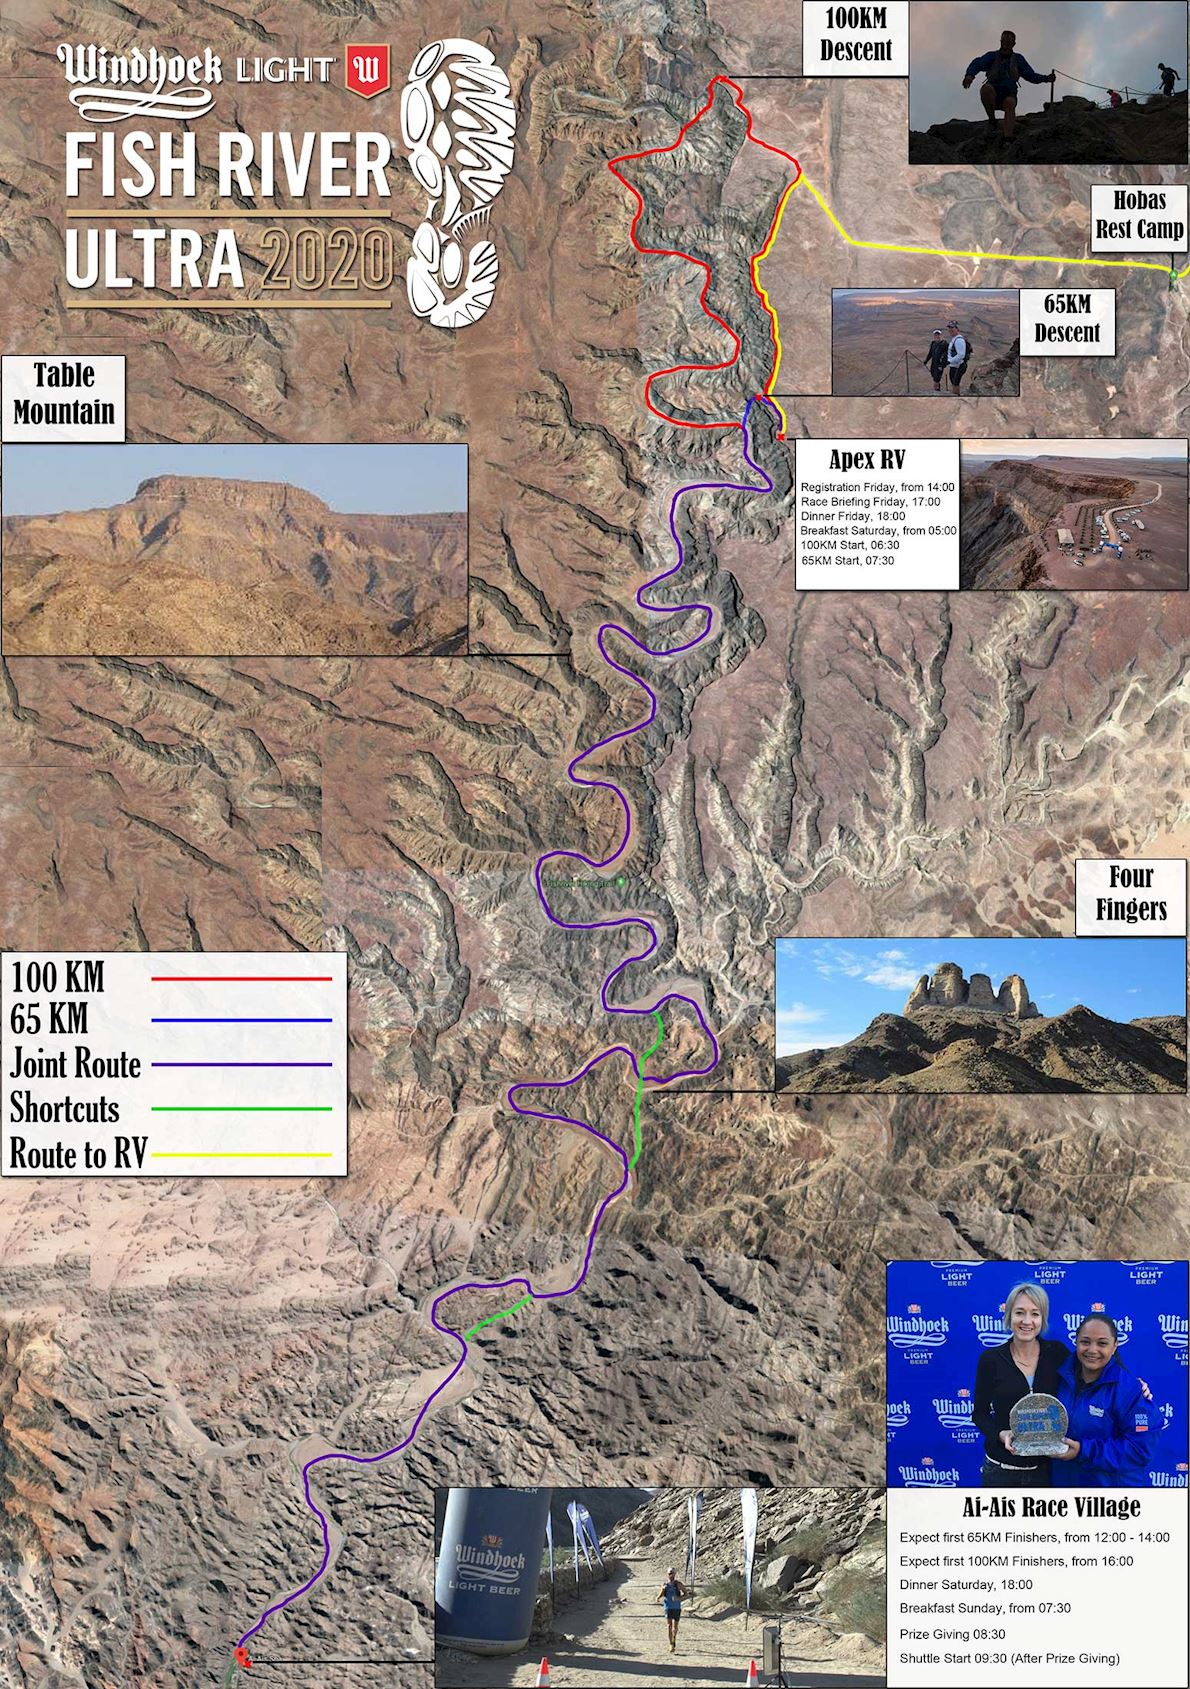 Windhoek Light Fish River Canyon Ultra MAPA DEL RECORRIDO DE